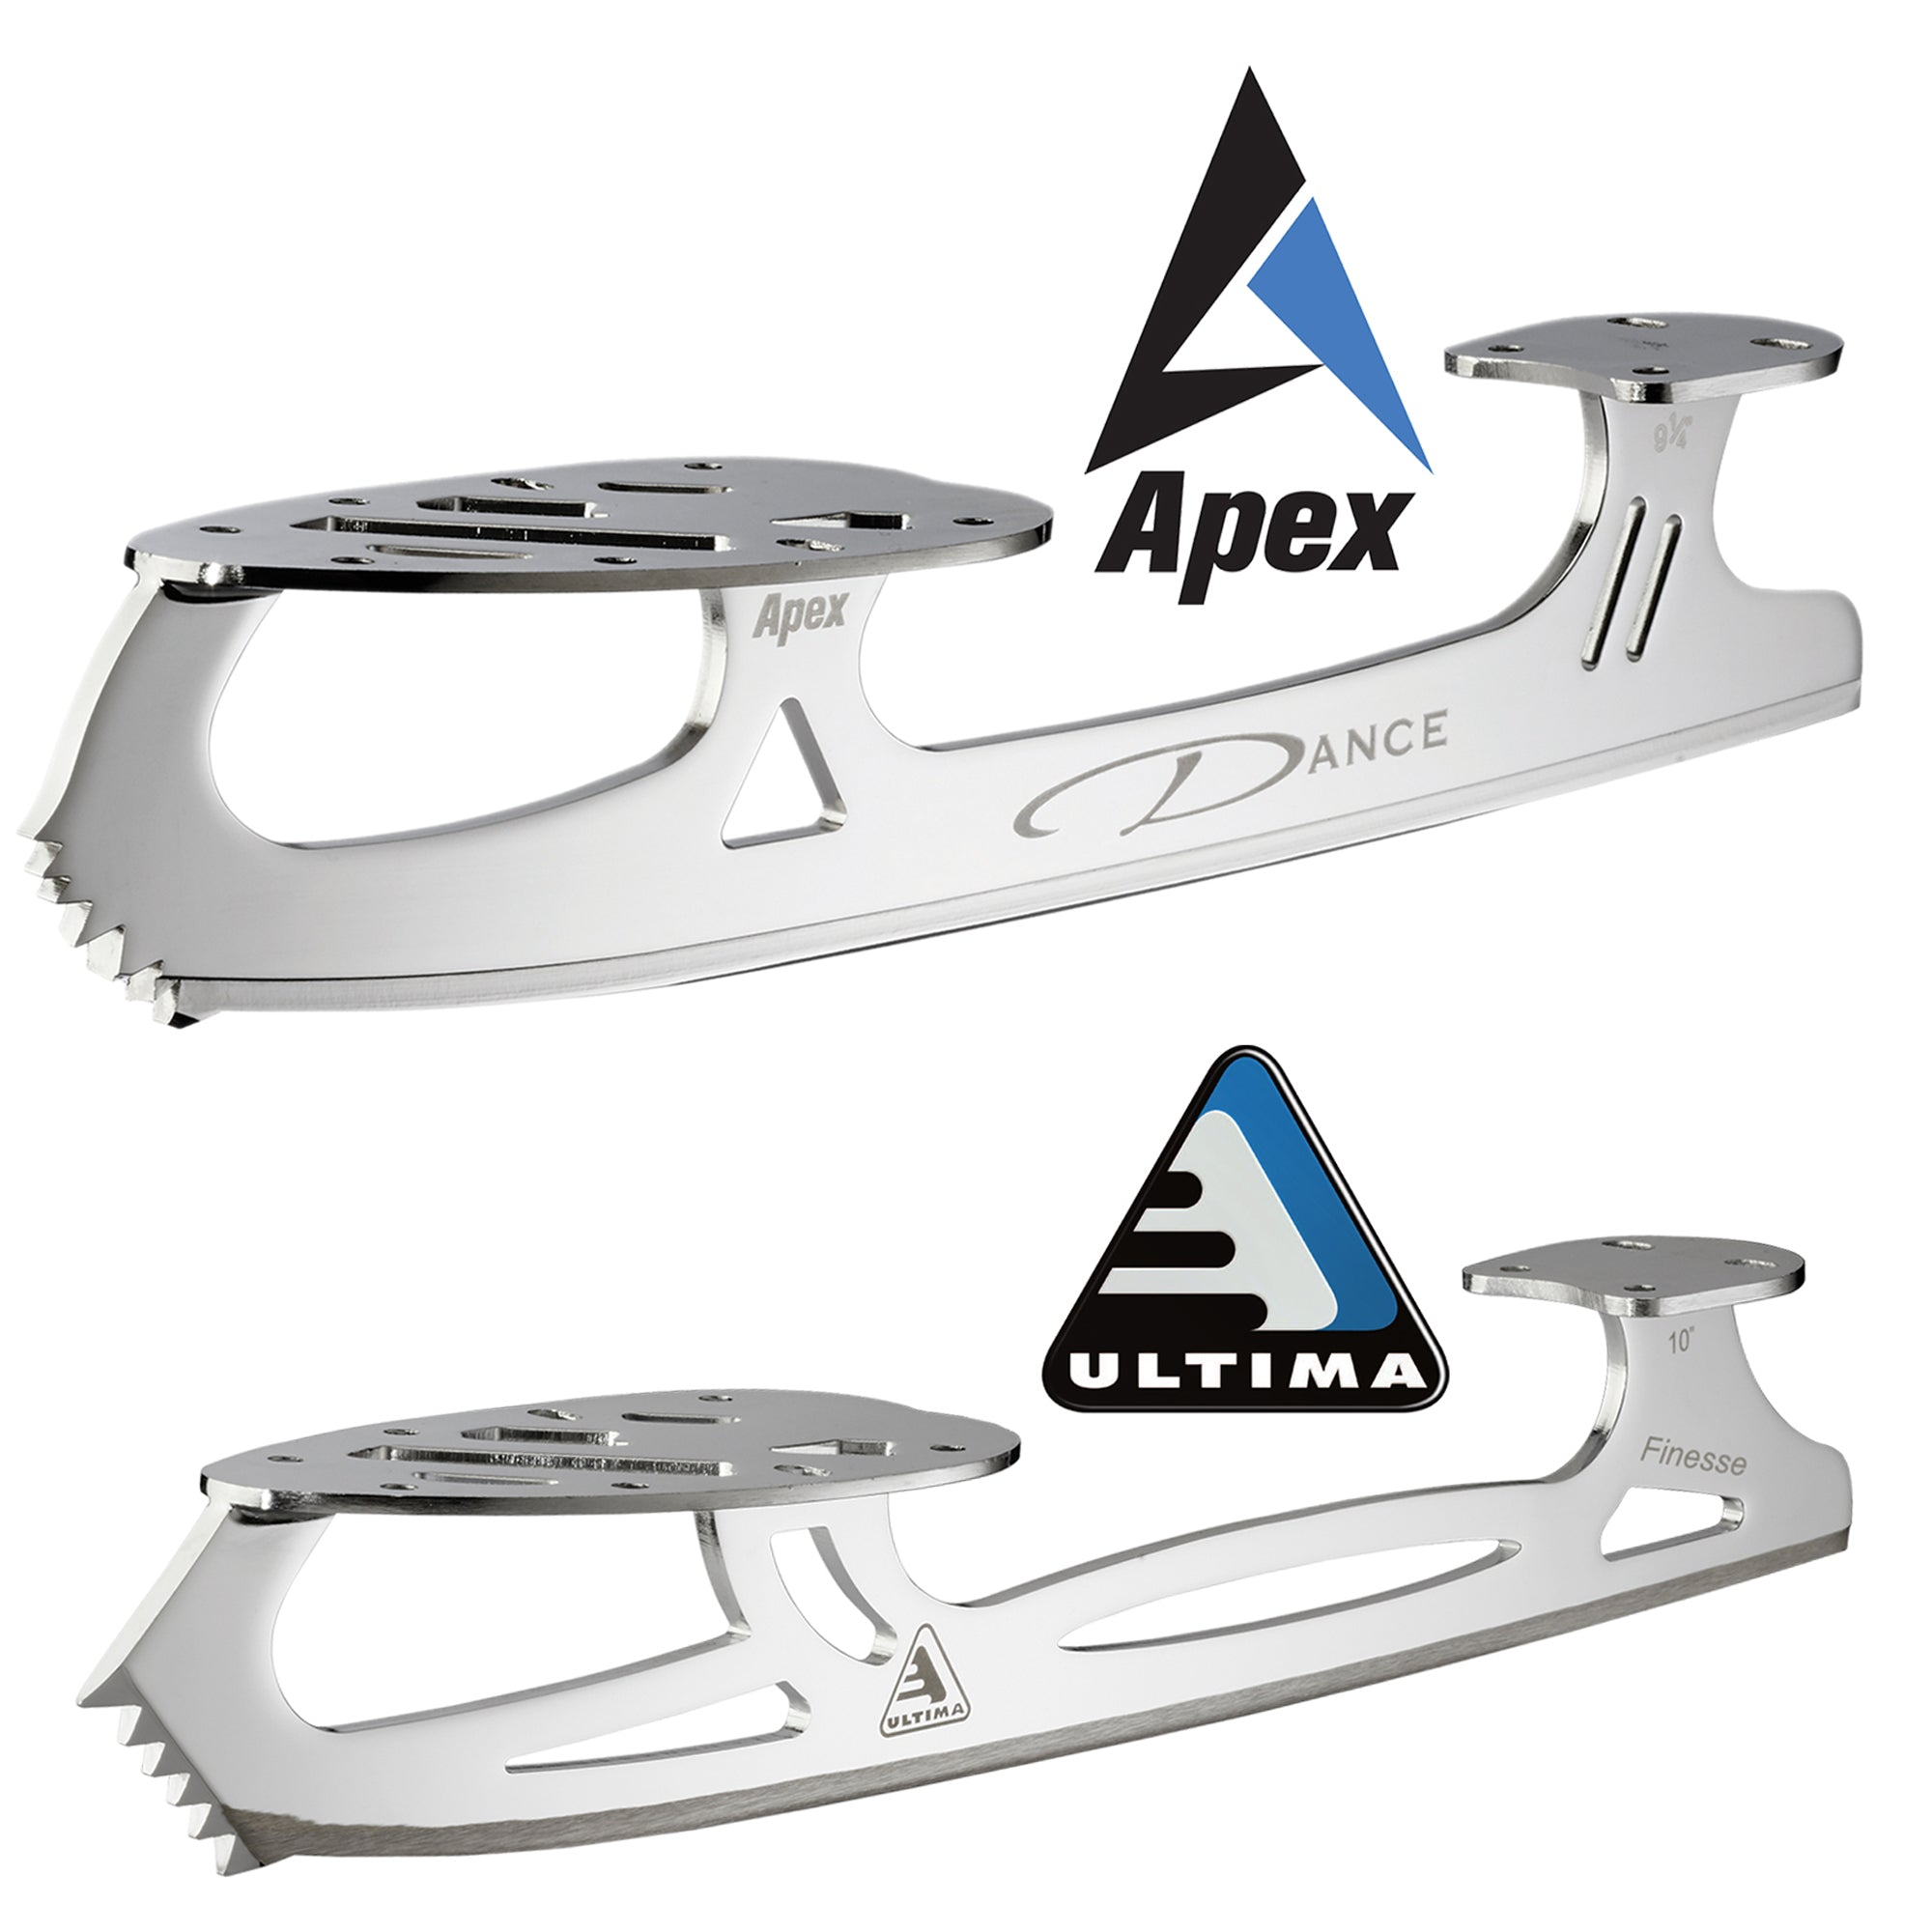 Apex and Ultima Specialty Blades